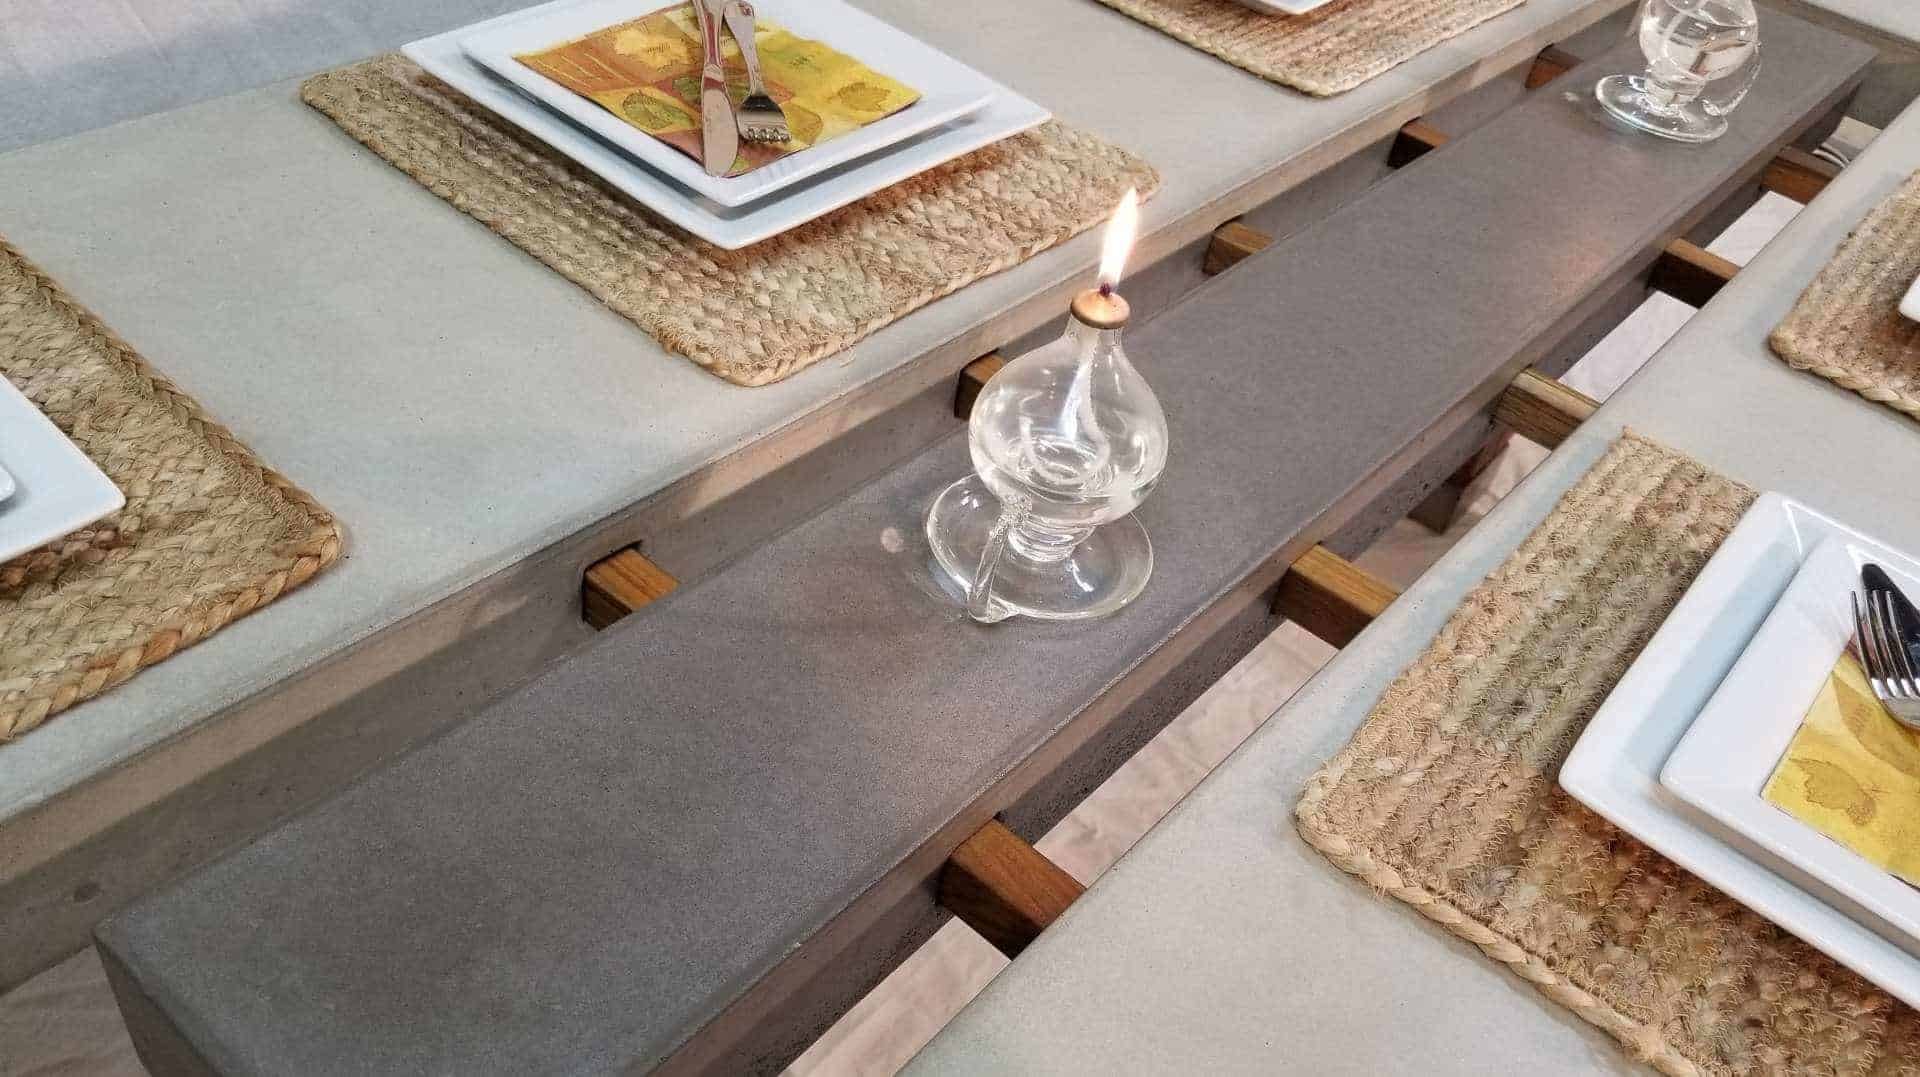 Concrete top dining table on teak legs with center serving tray - closeup, Designs by Rudy